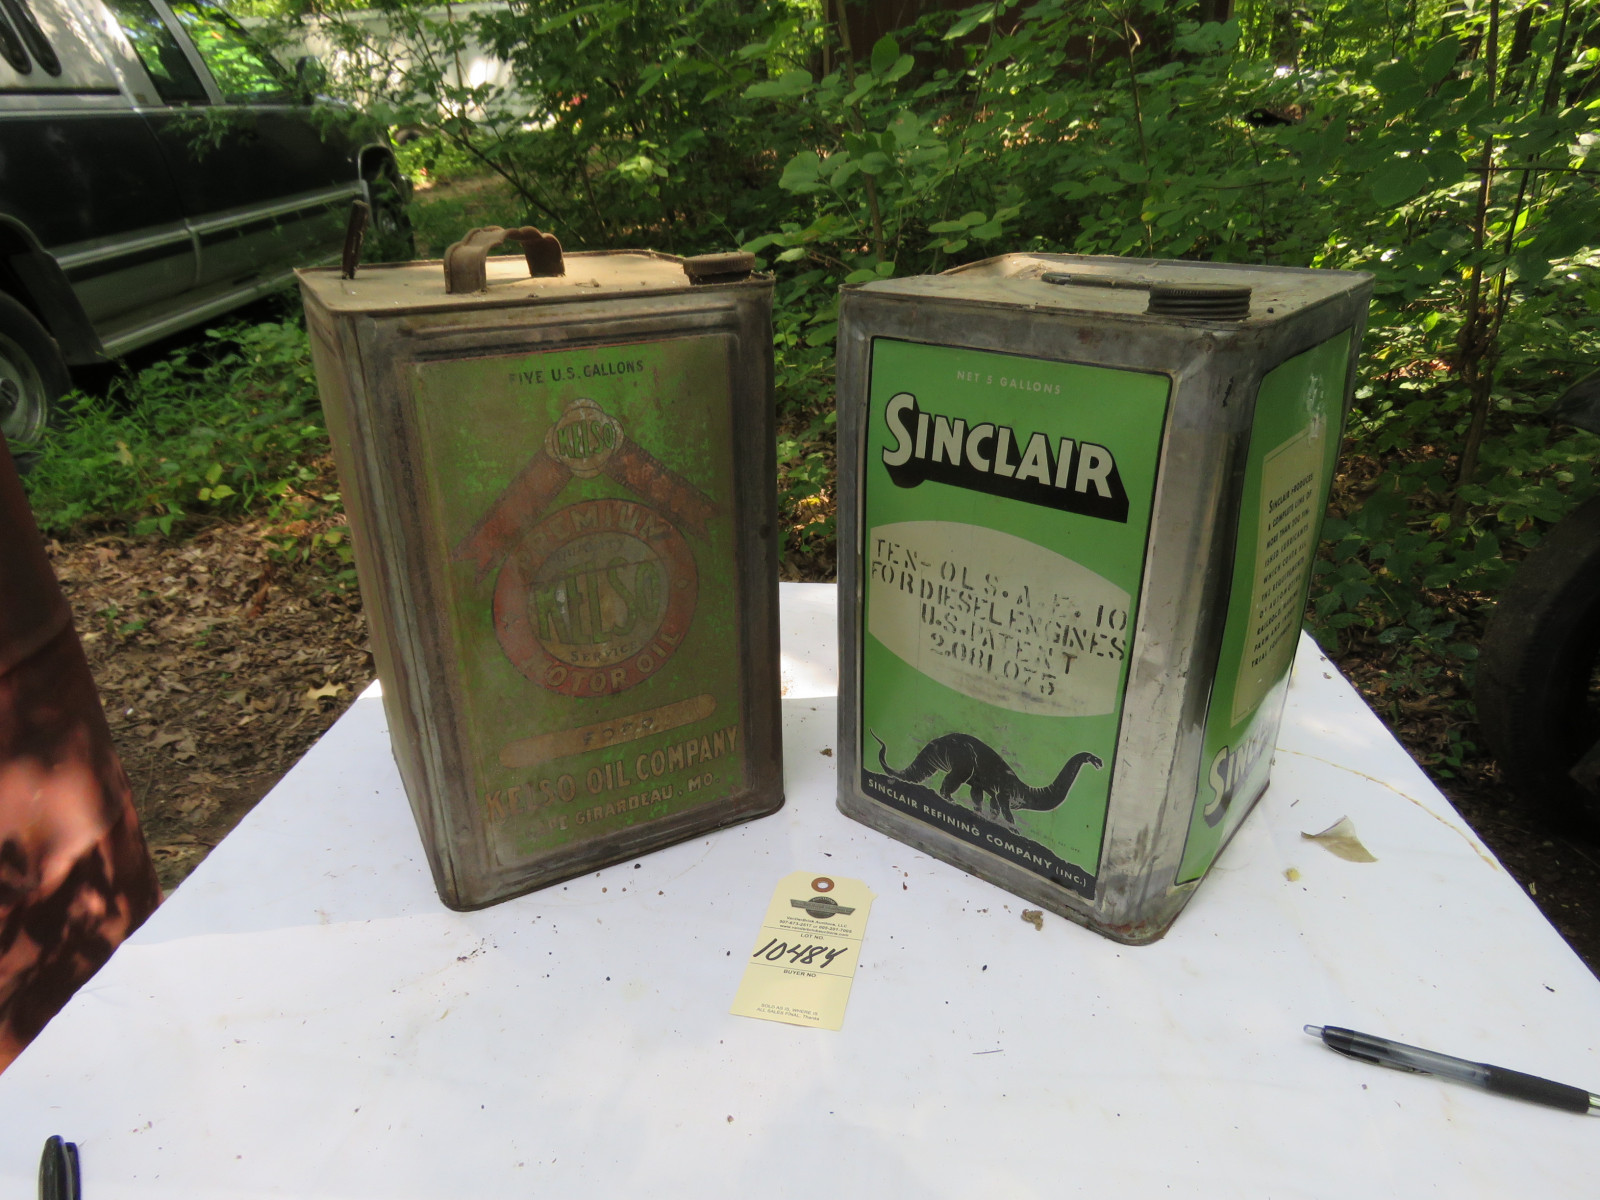 Sinclair & Kelso 5 Gallon Cans - Image 1